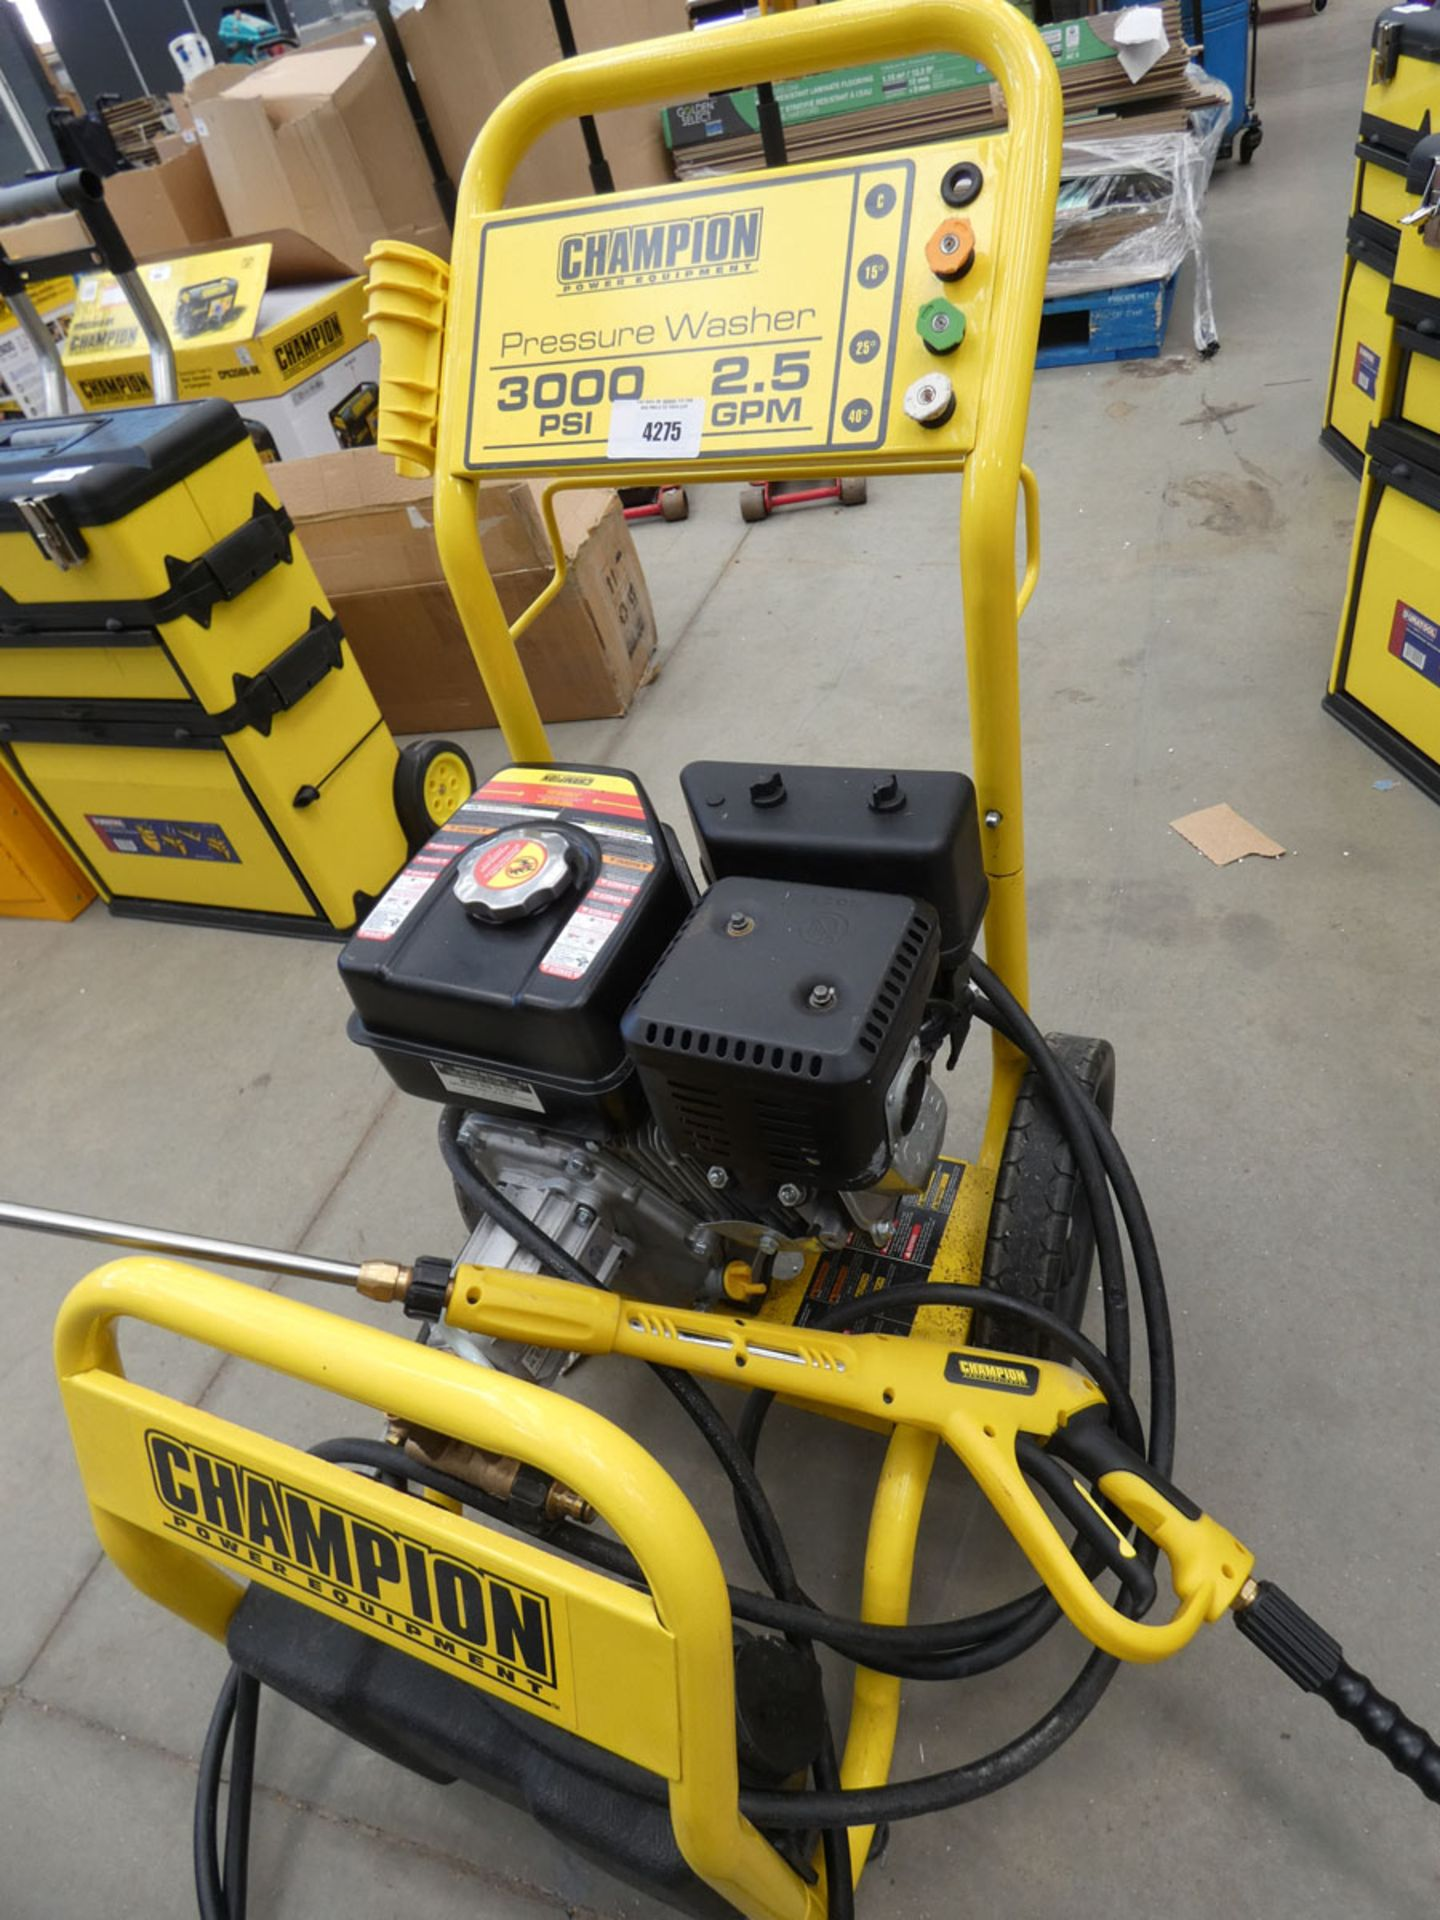 Champion petrol powered pressure washer - Image 2 of 2